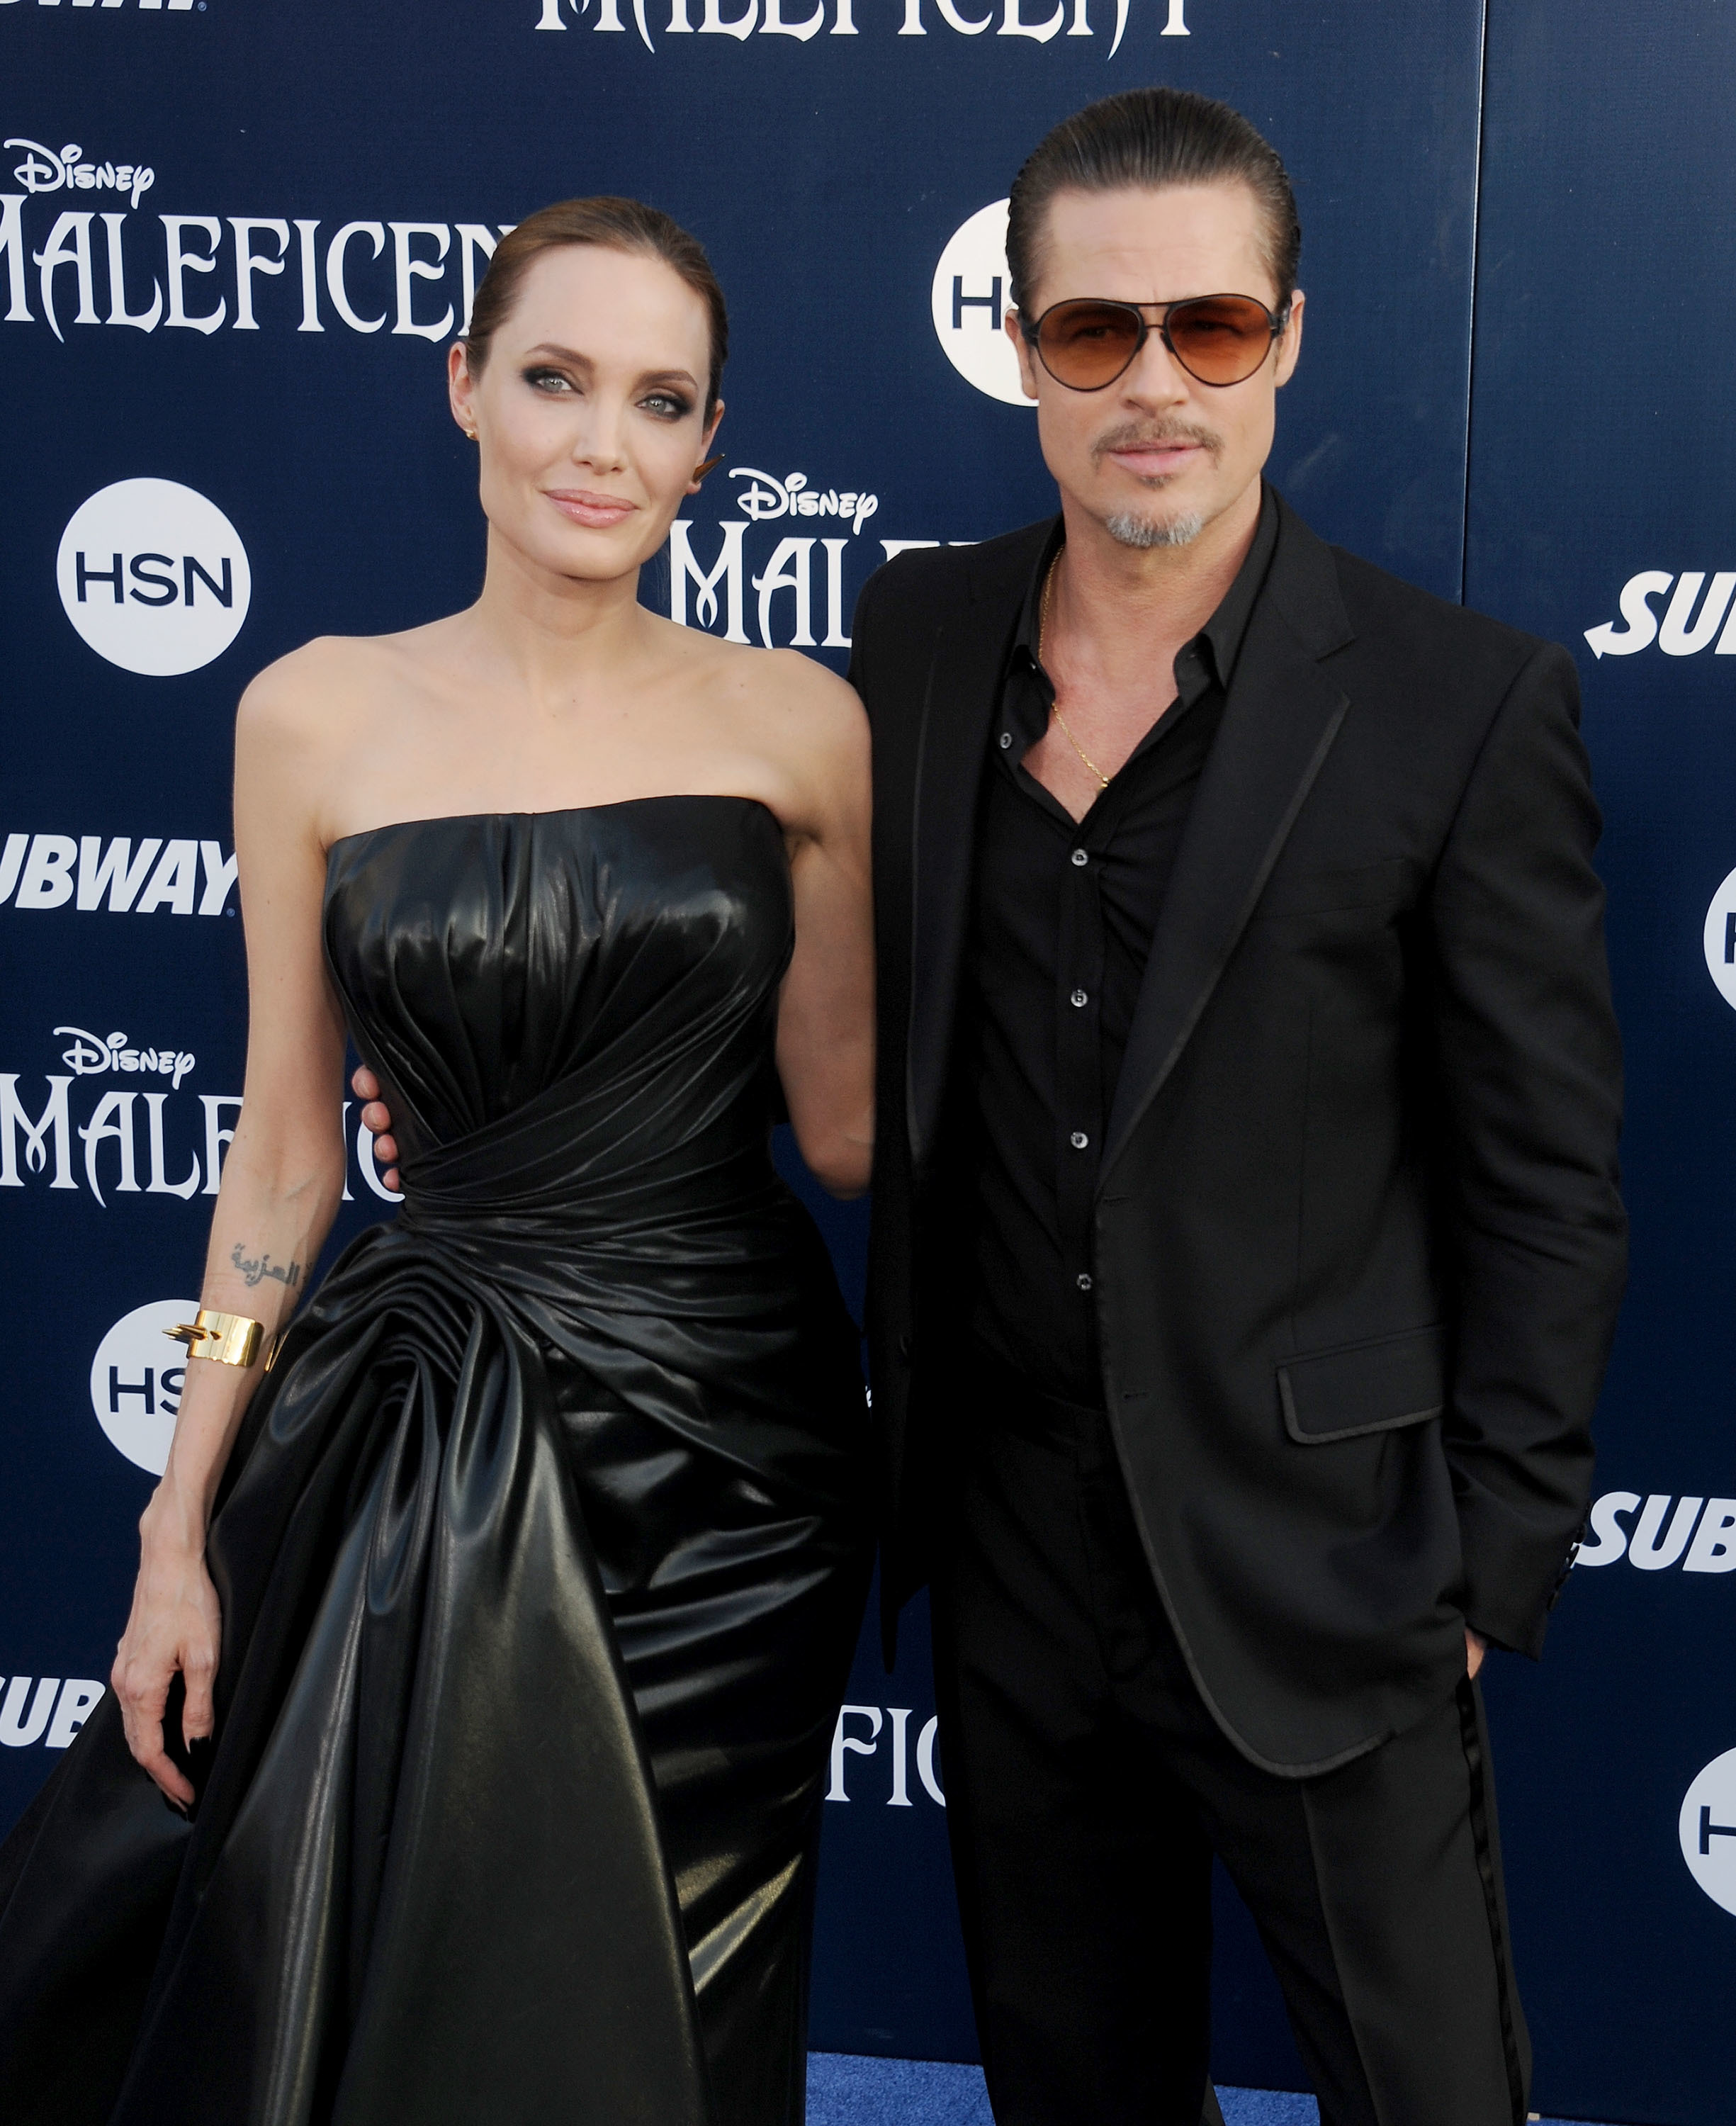 angelina jolie brad pitt malificent